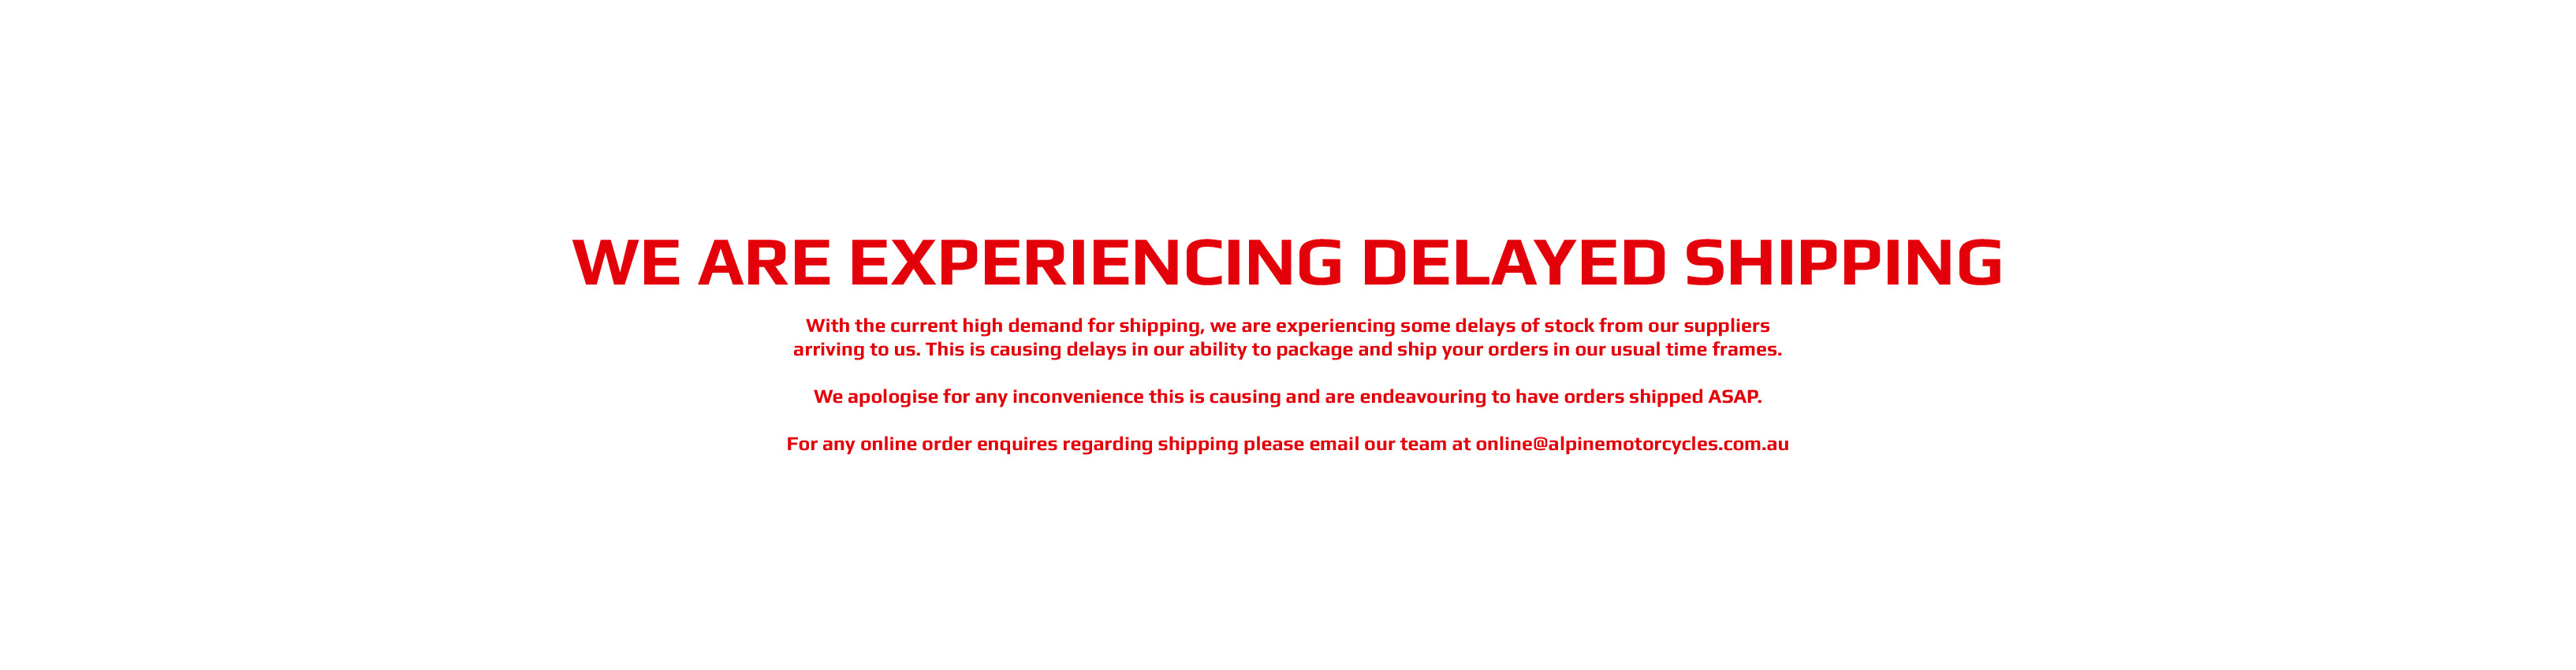 Delayed shipping Web banner.jpg